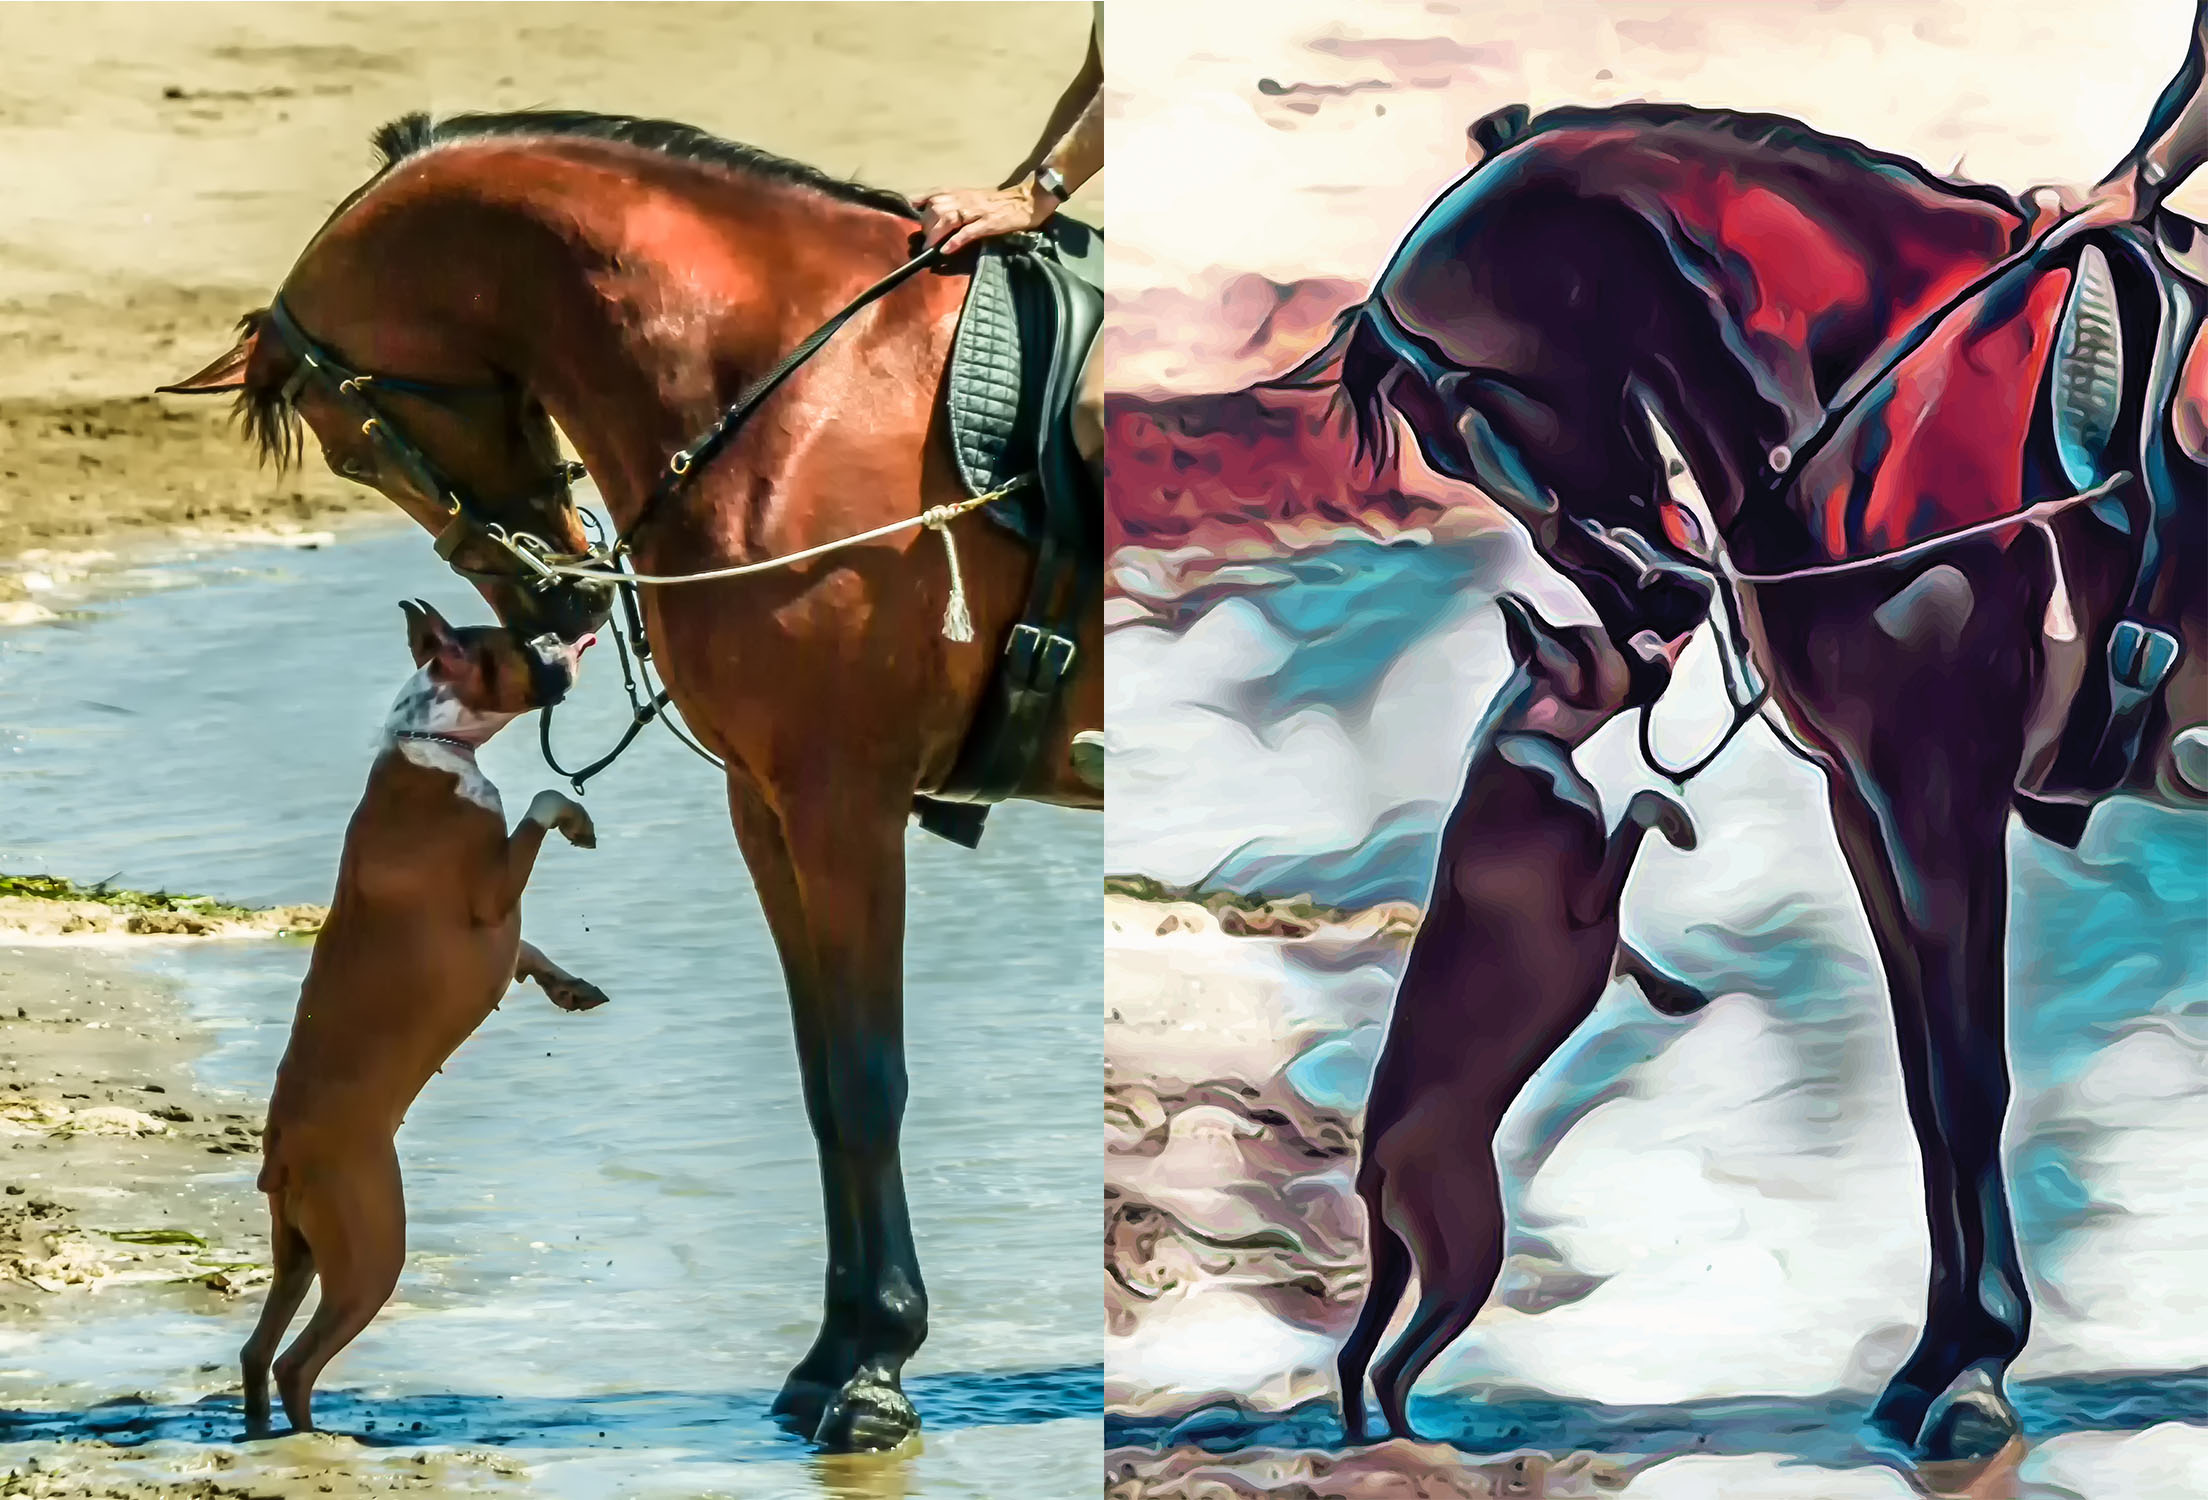 Before and after stylized image of a dog nuzzling a horse